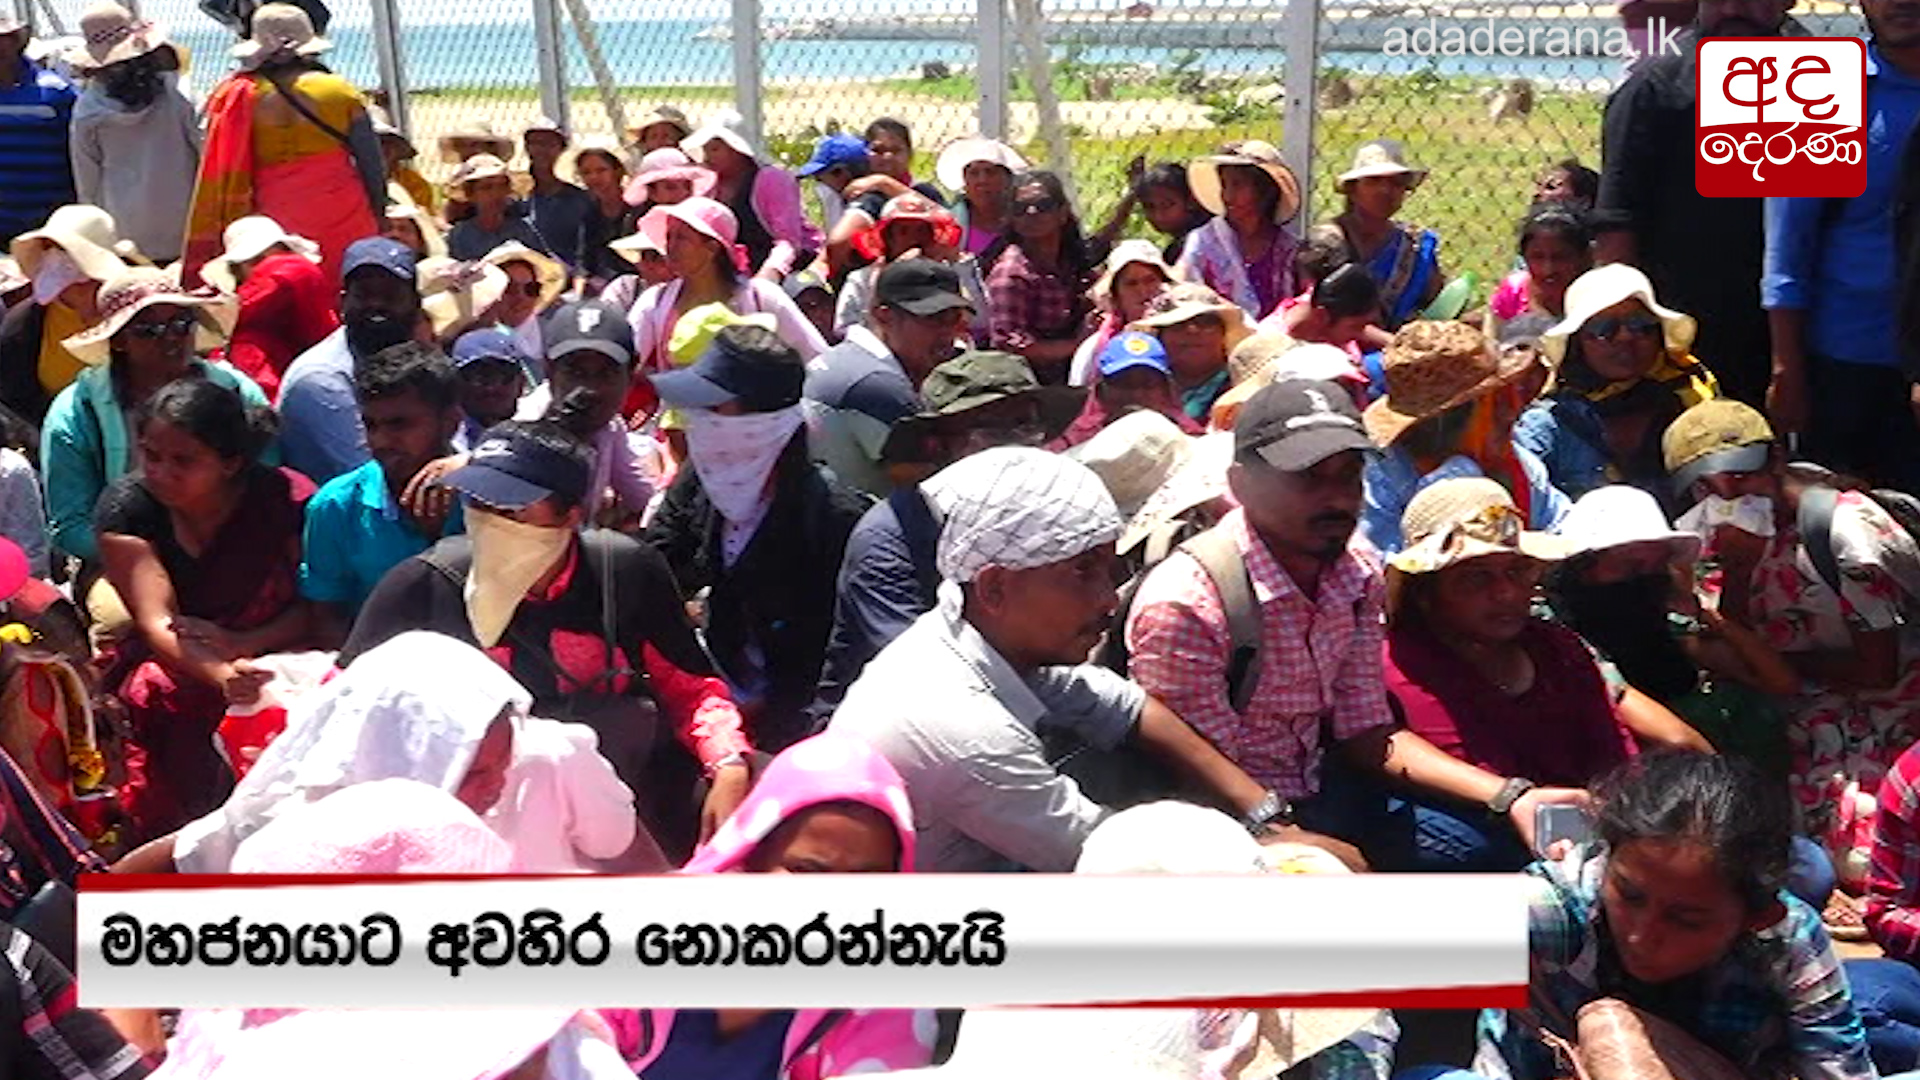 More protests in Colombo